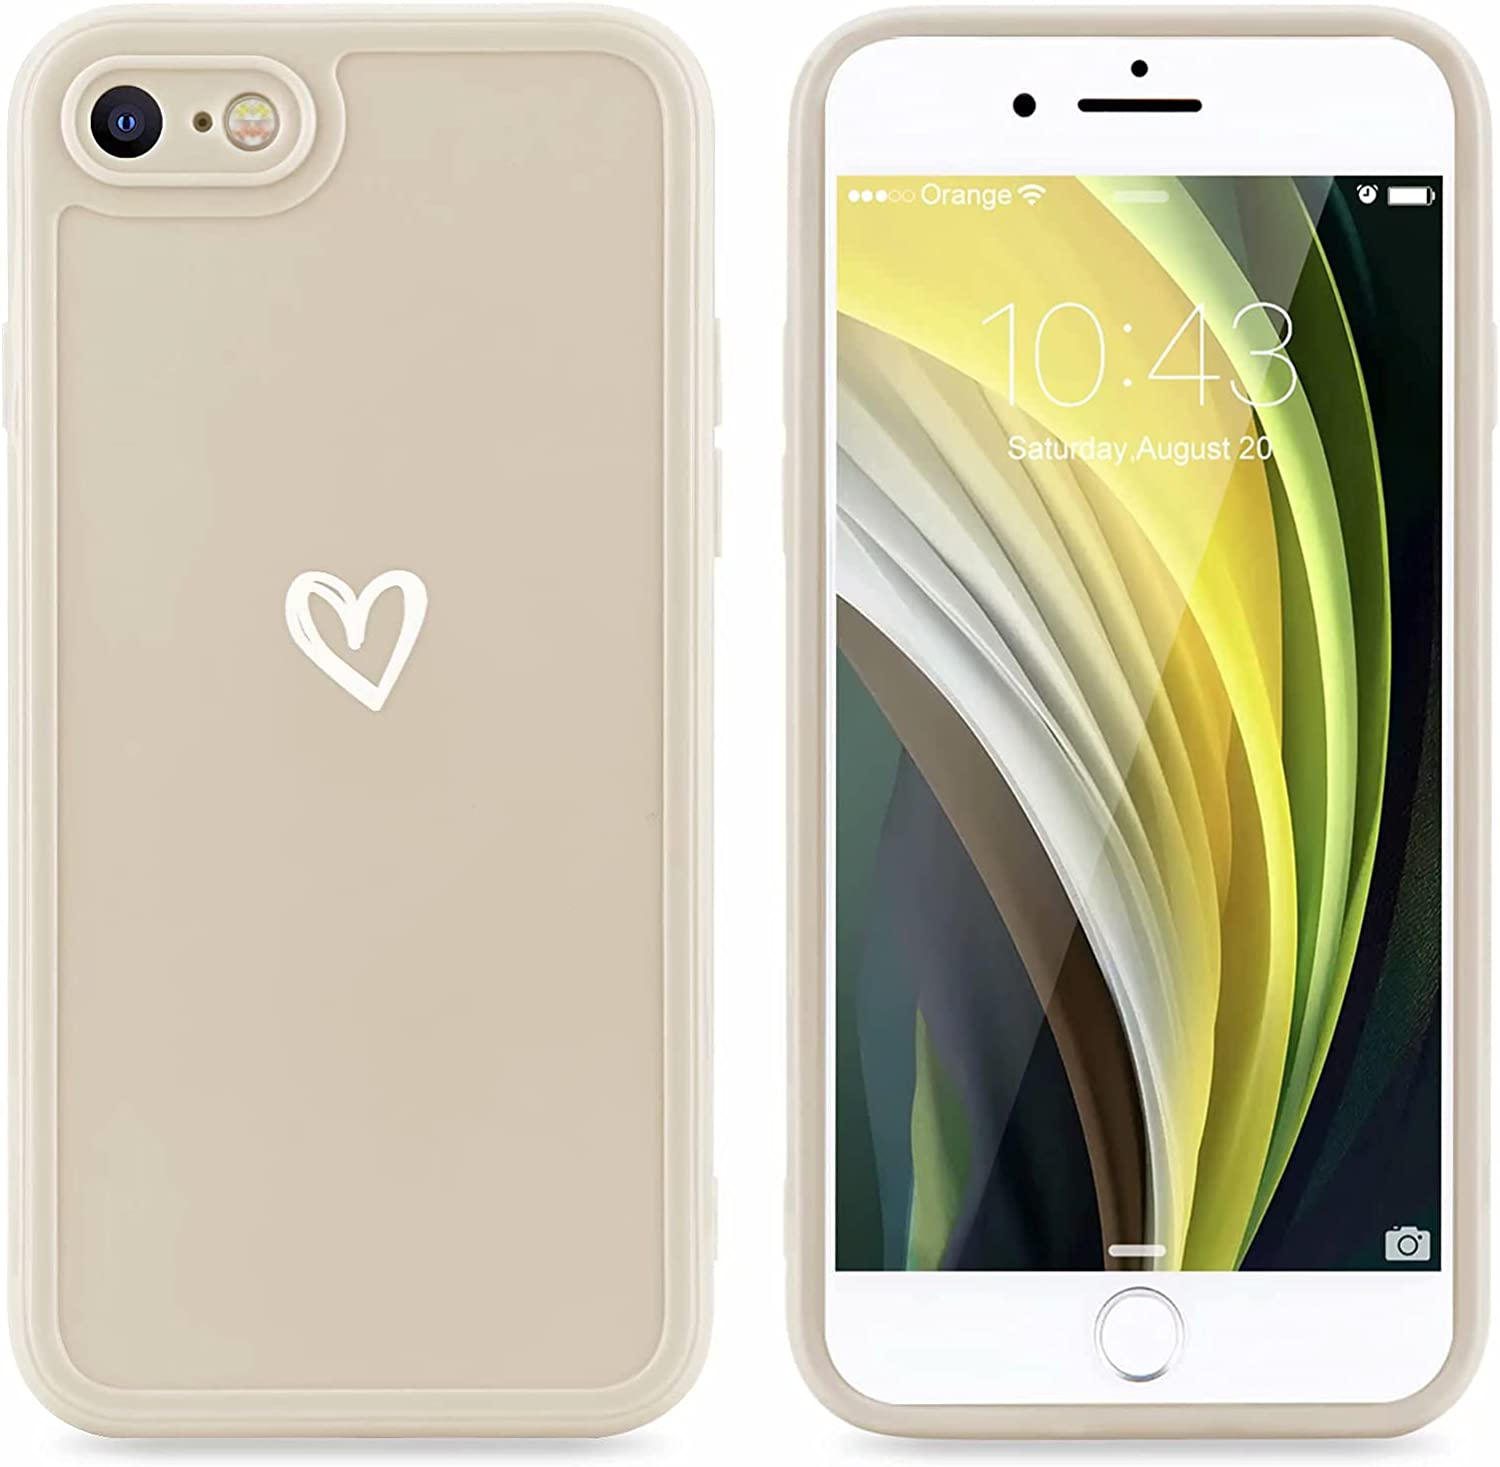 LAPOPNUT Compatible with iPhone 7 Plus iPhone 8 Plus Case for Women Girls Cute Shockproof Protective Soft TPU Phone Case with Heart Pattern Design Back Bumper Slim Cover Cases iPhone 7 Plus White